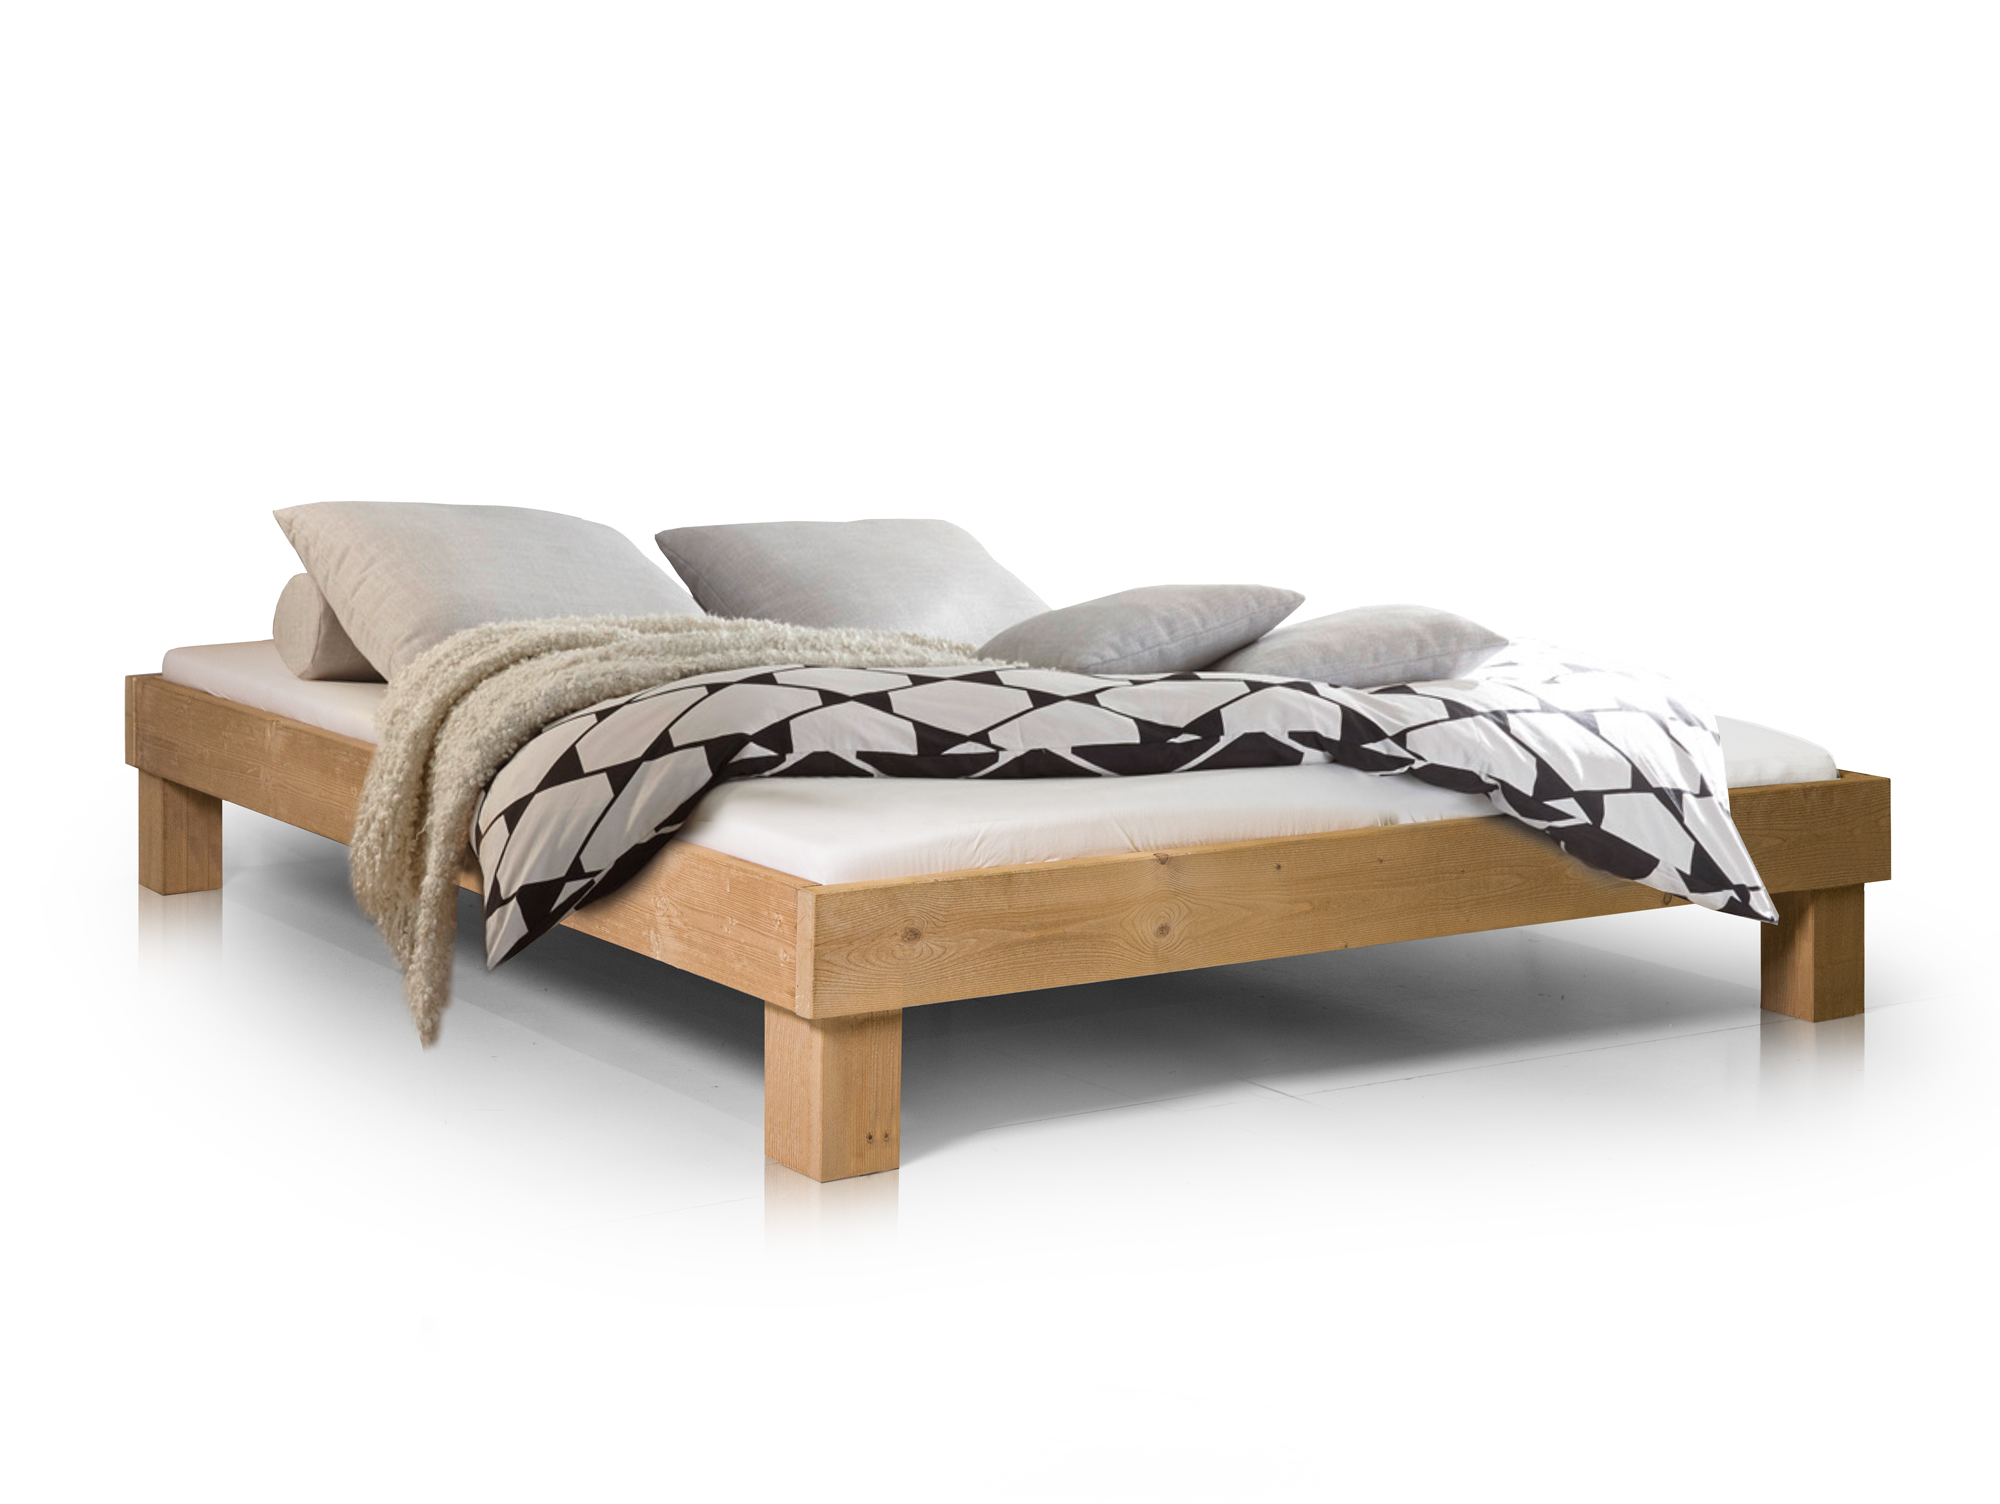 pumba doppelbett futonbett 160x200 massivholz fichte eichefarbig ohne kopfteil ebay. Black Bedroom Furniture Sets. Home Design Ideas